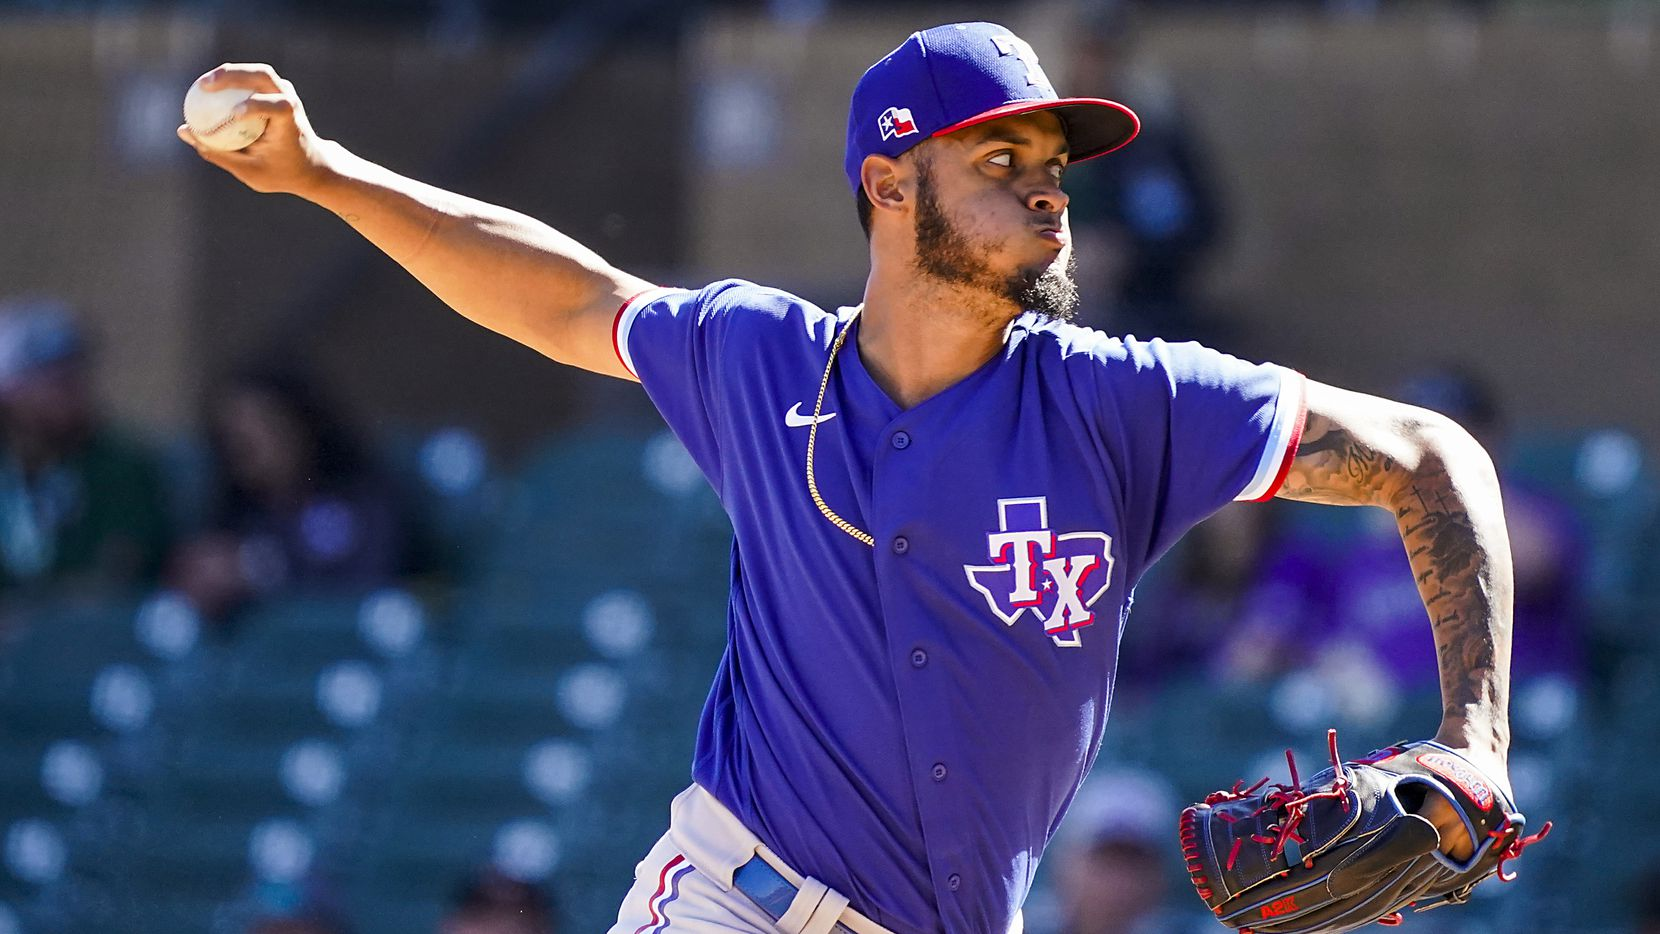 Rangers pitcher Jonathan Hernandez pitches during the fourth inning of a spring training game against the Colorado Rockies at Salt River Fields at Talking Stick on Wednesday, Feb. 26, 2020, in Scottsdale, Ariz.